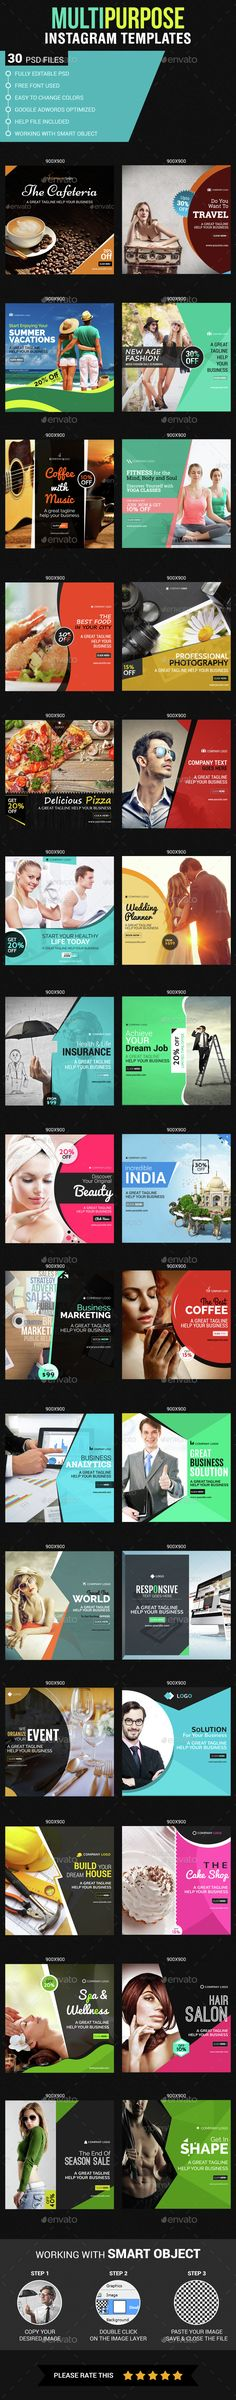 Multipurpose Instagram Templates — Photoshop PSD #yoga #femine • Available here → https://graphicriver.net/item/multipurpose-instagram-templates/14672256?ref=pxcr